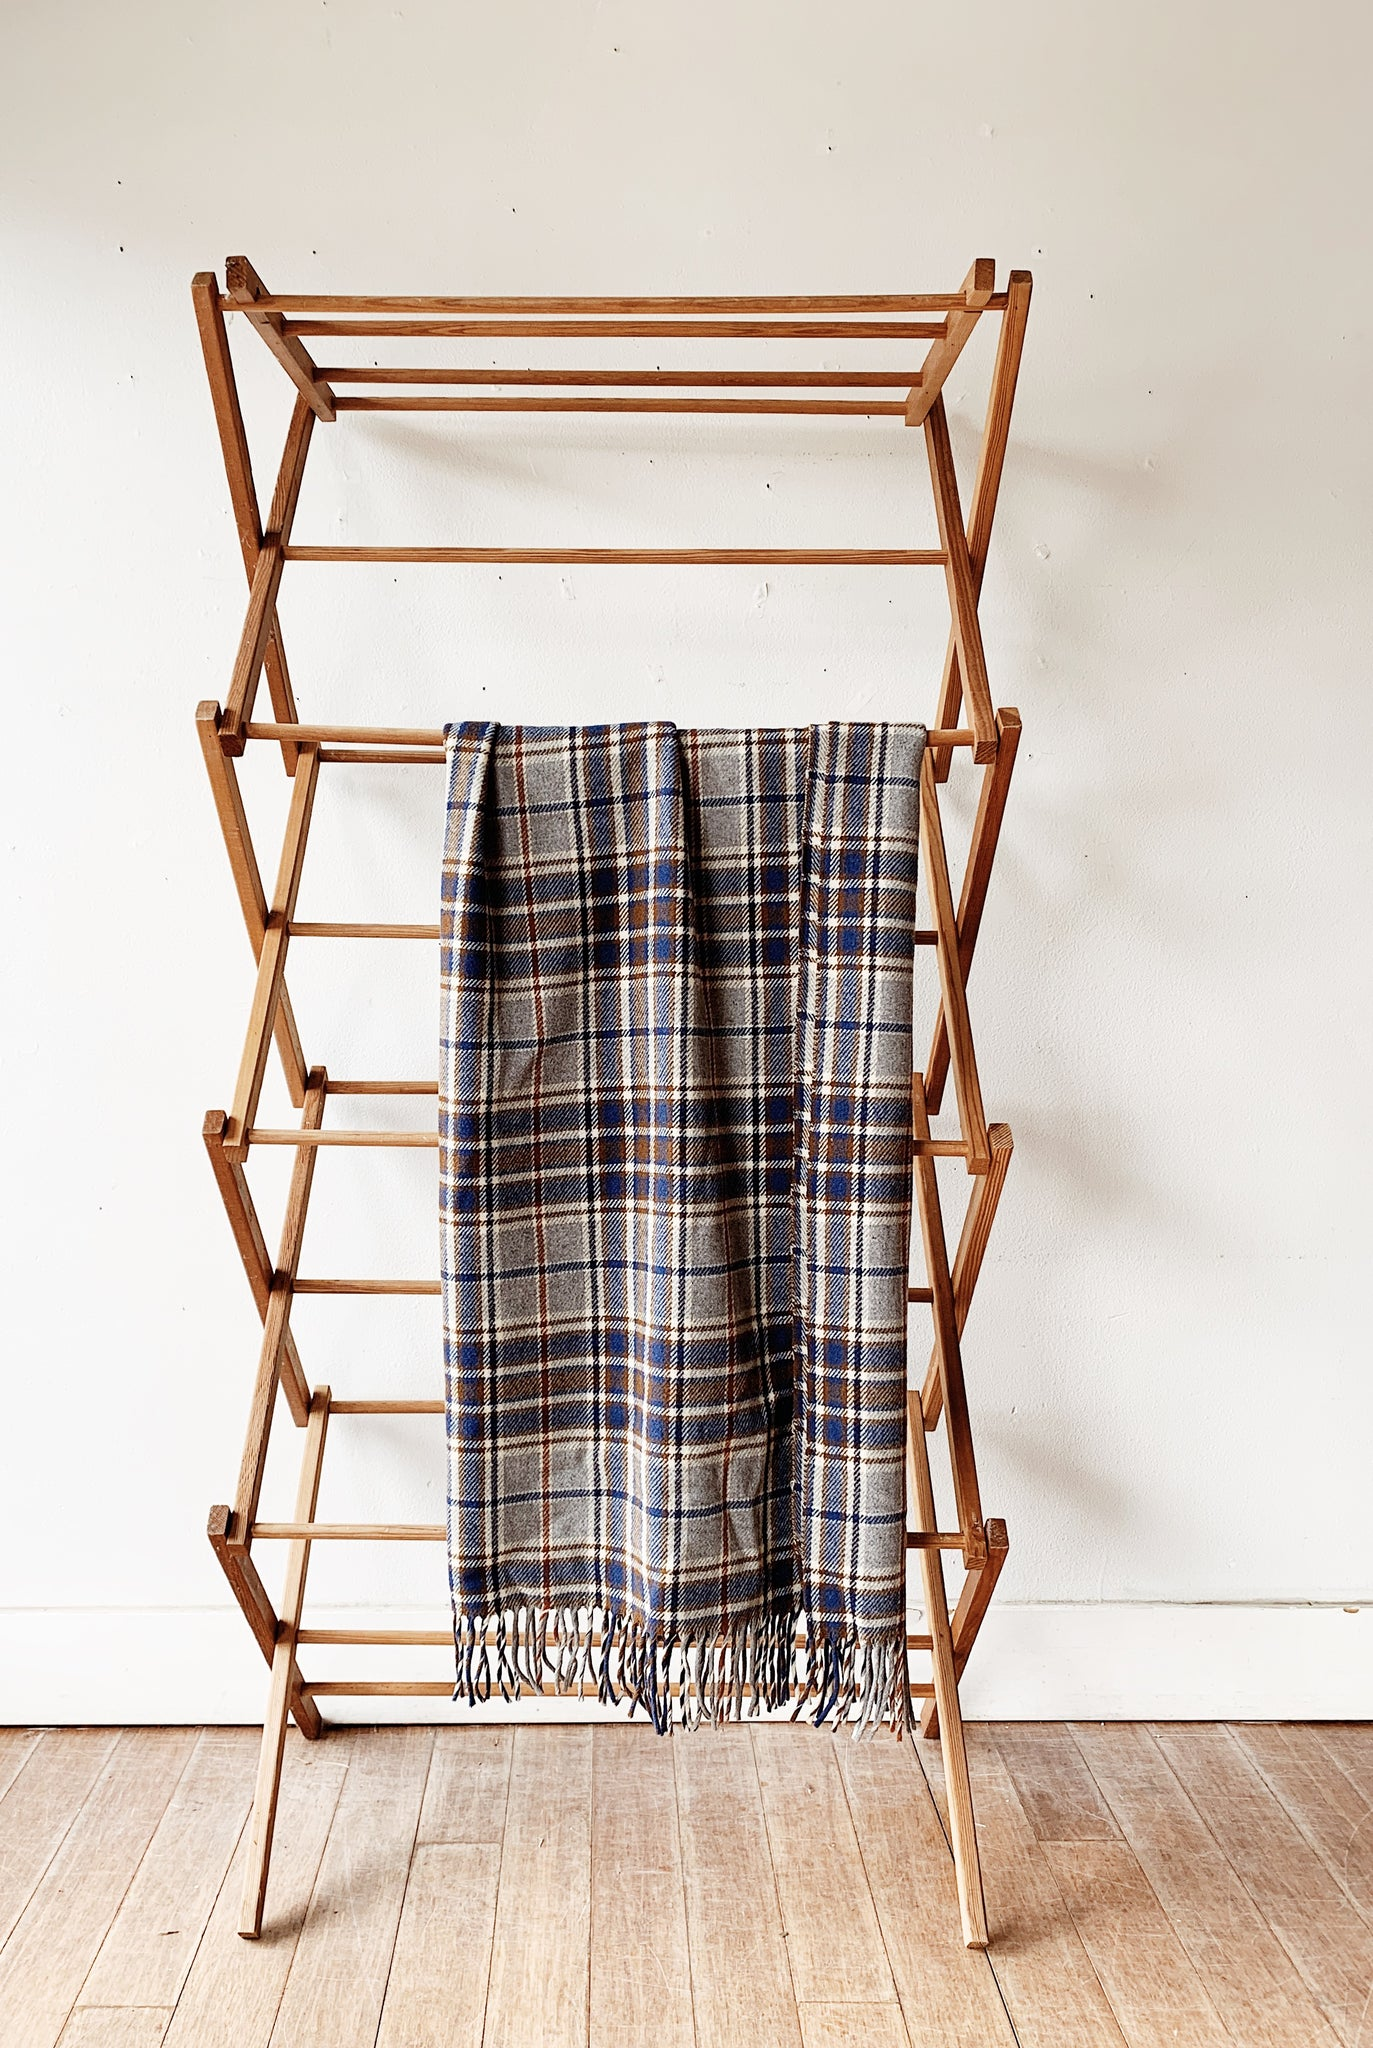 Large Vintage Collapsible Wood Drying Rack